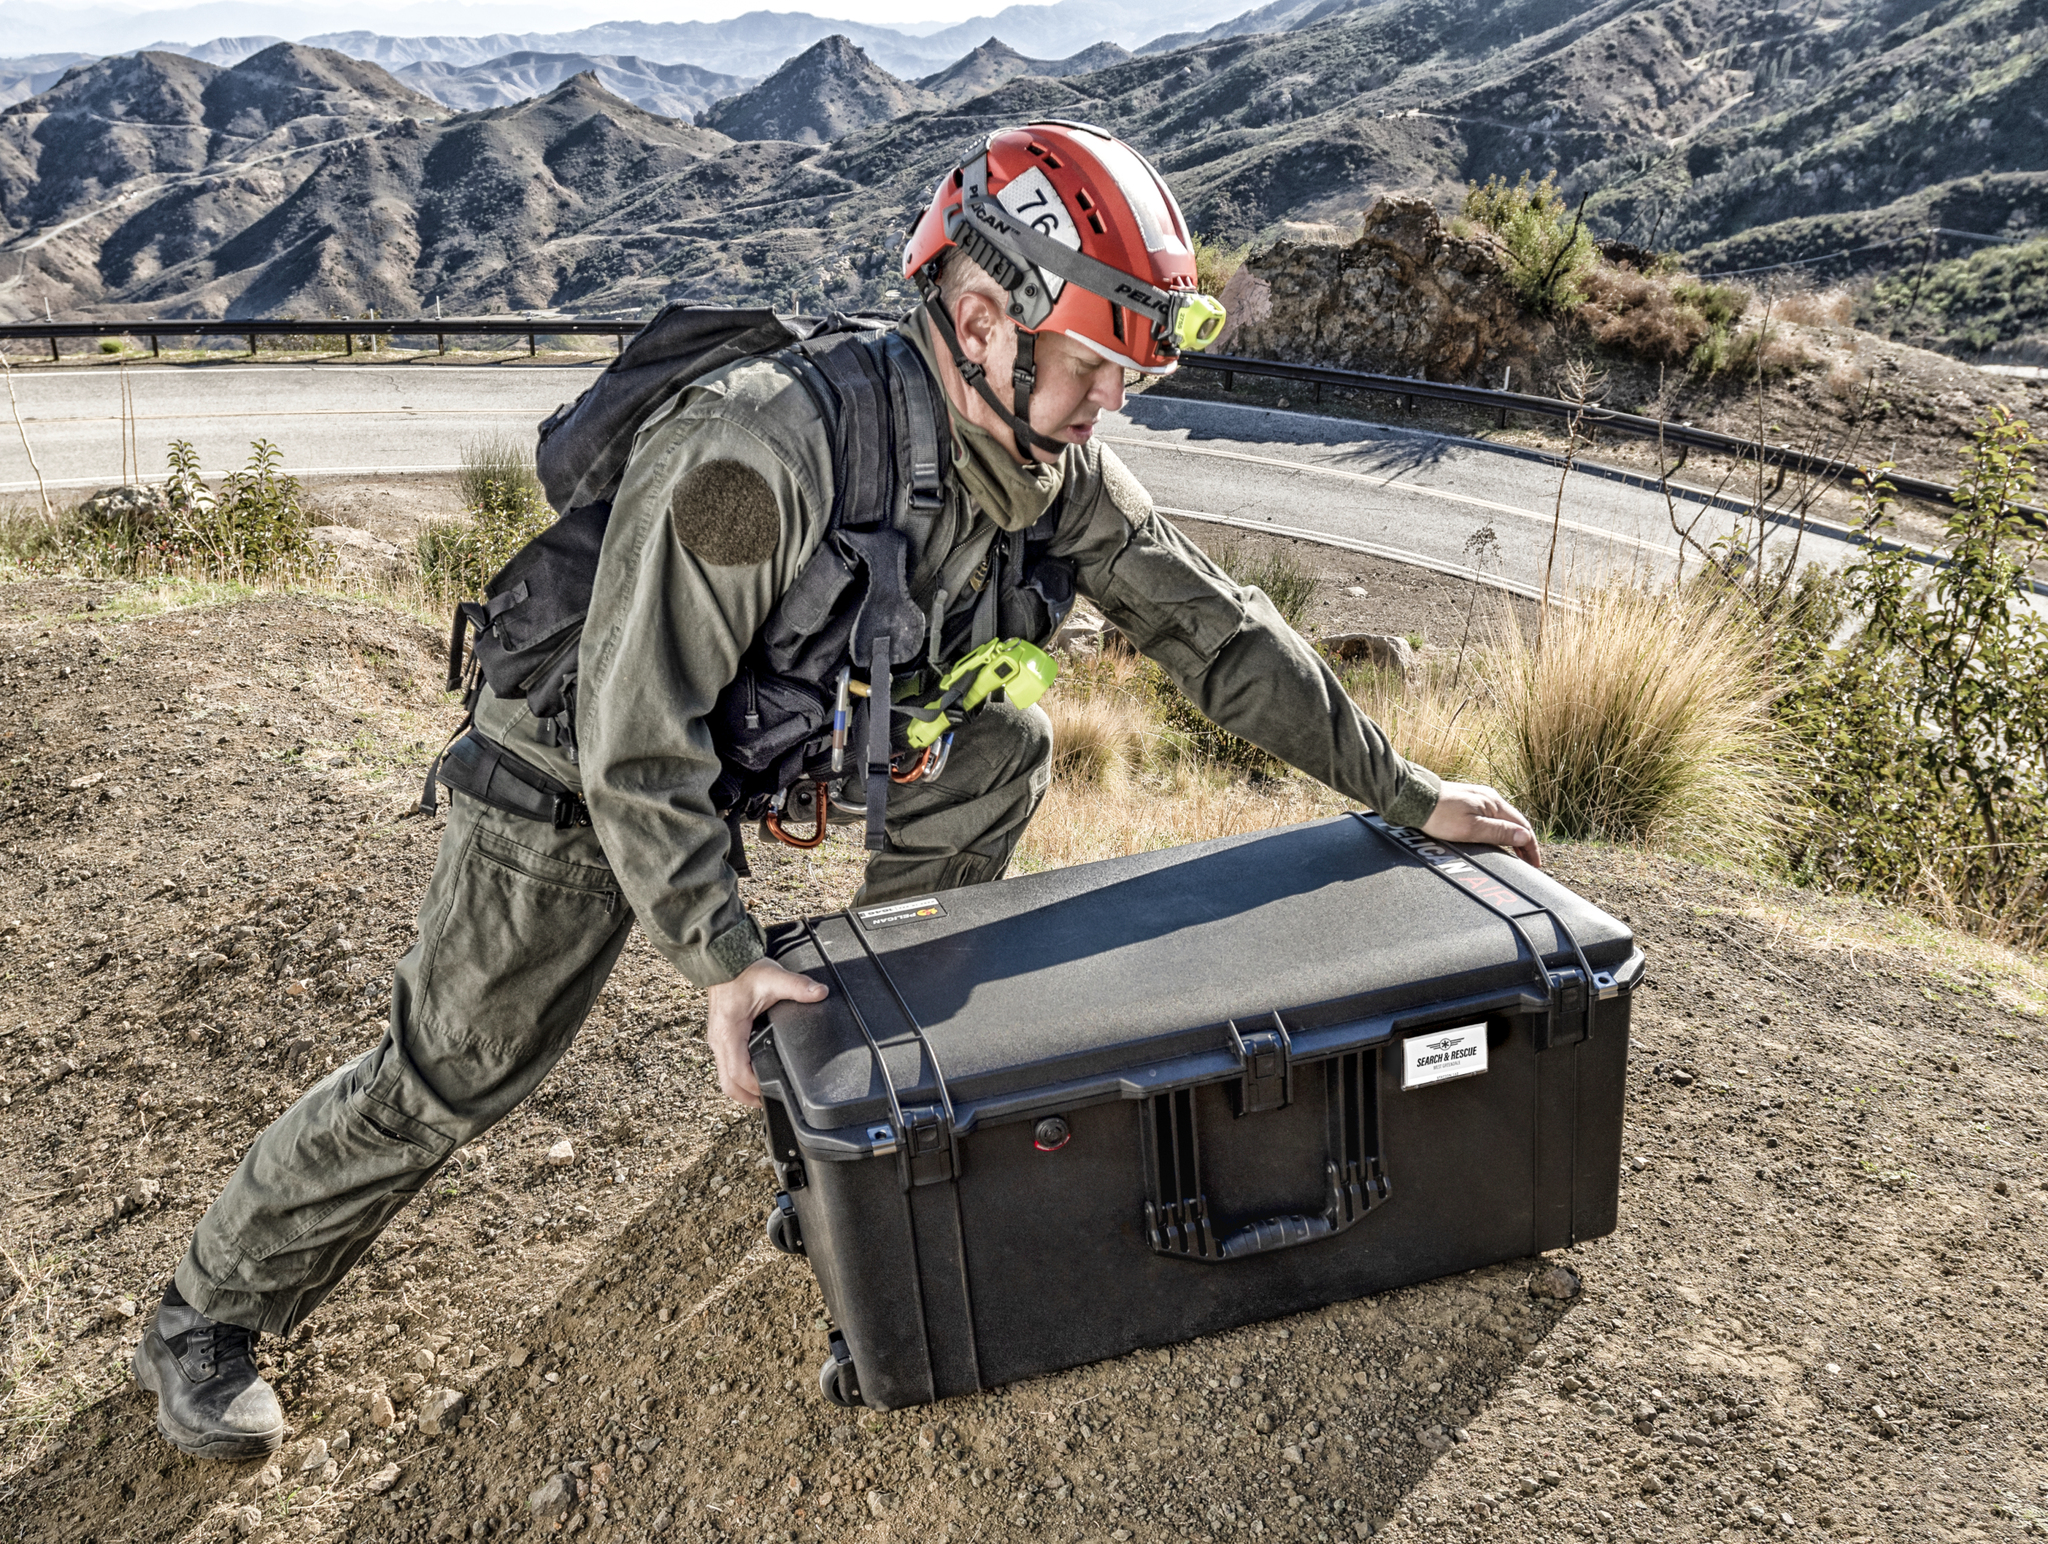 New Pelican Air 1646 Case Unveiled - Largest Pelican Air Case to Date!